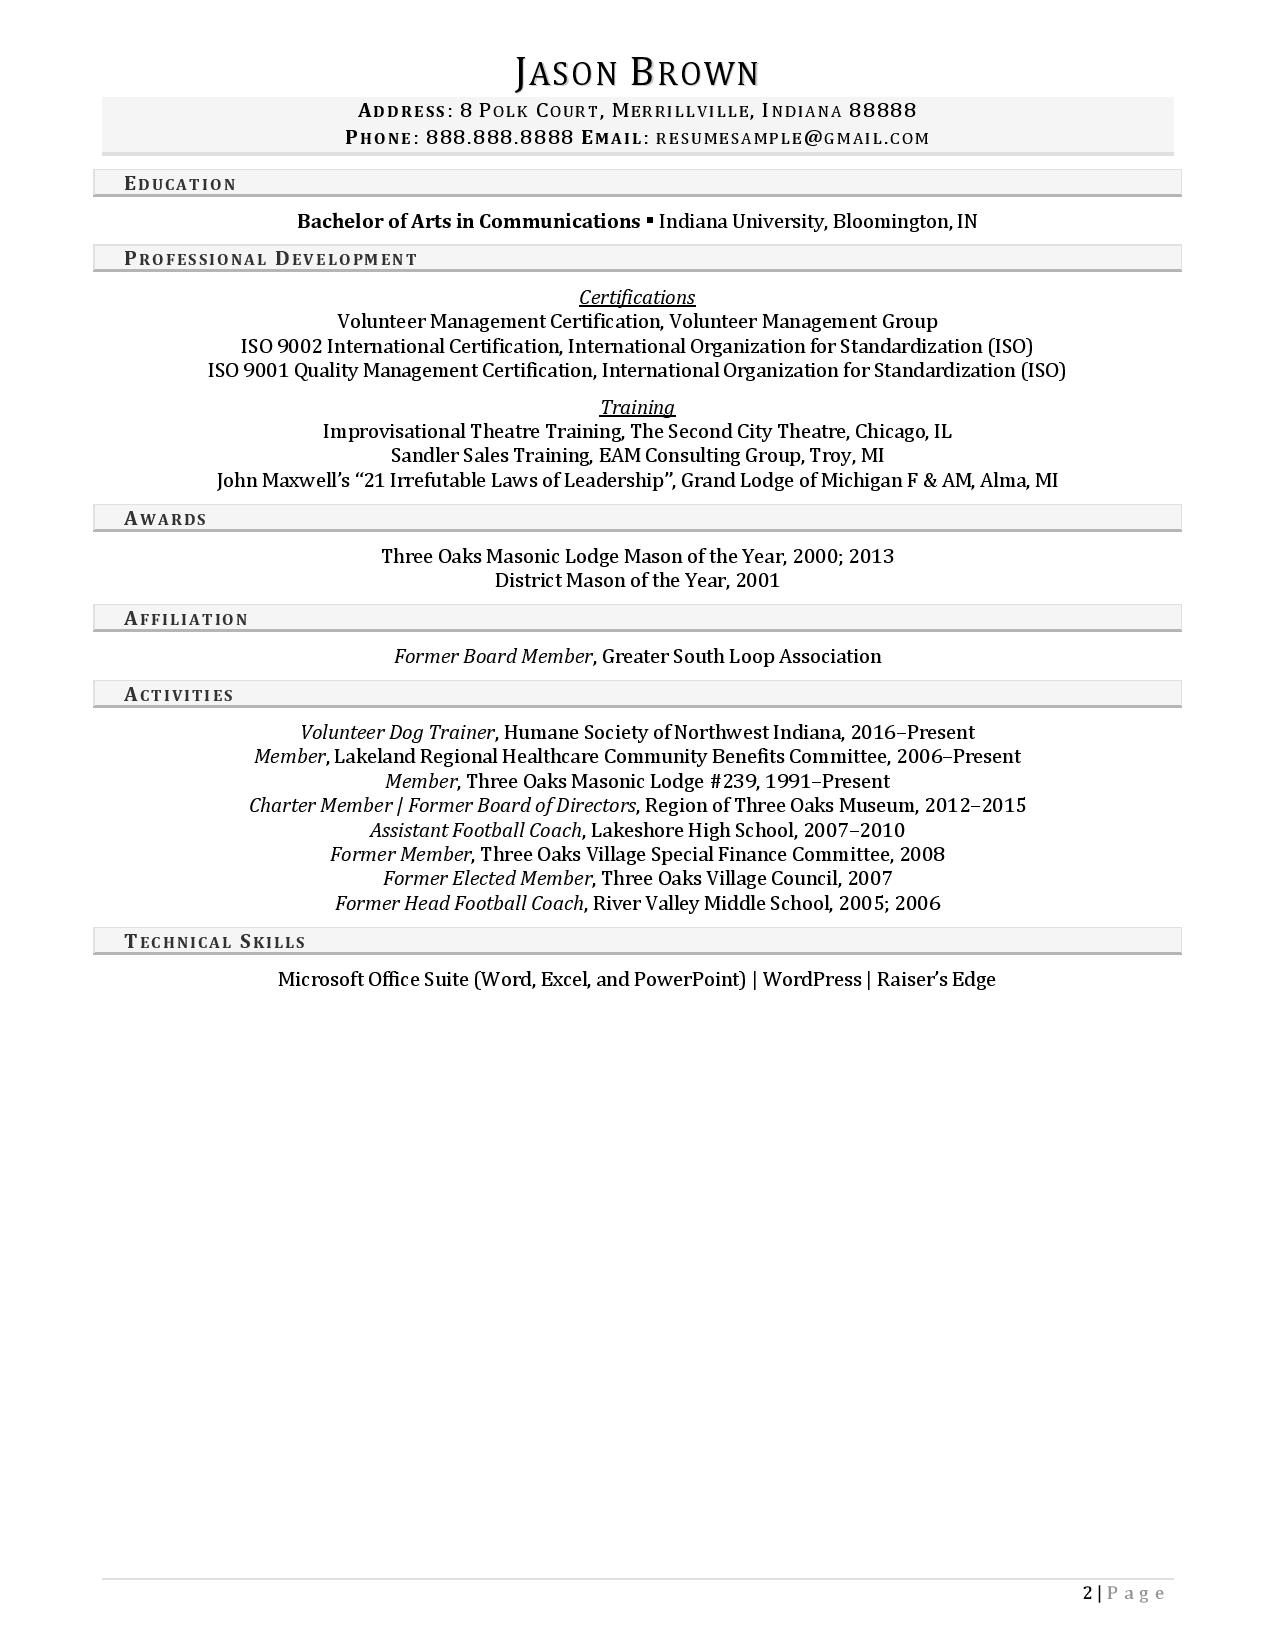 Community outreach coordinator resume examples with light gray section headers page 2